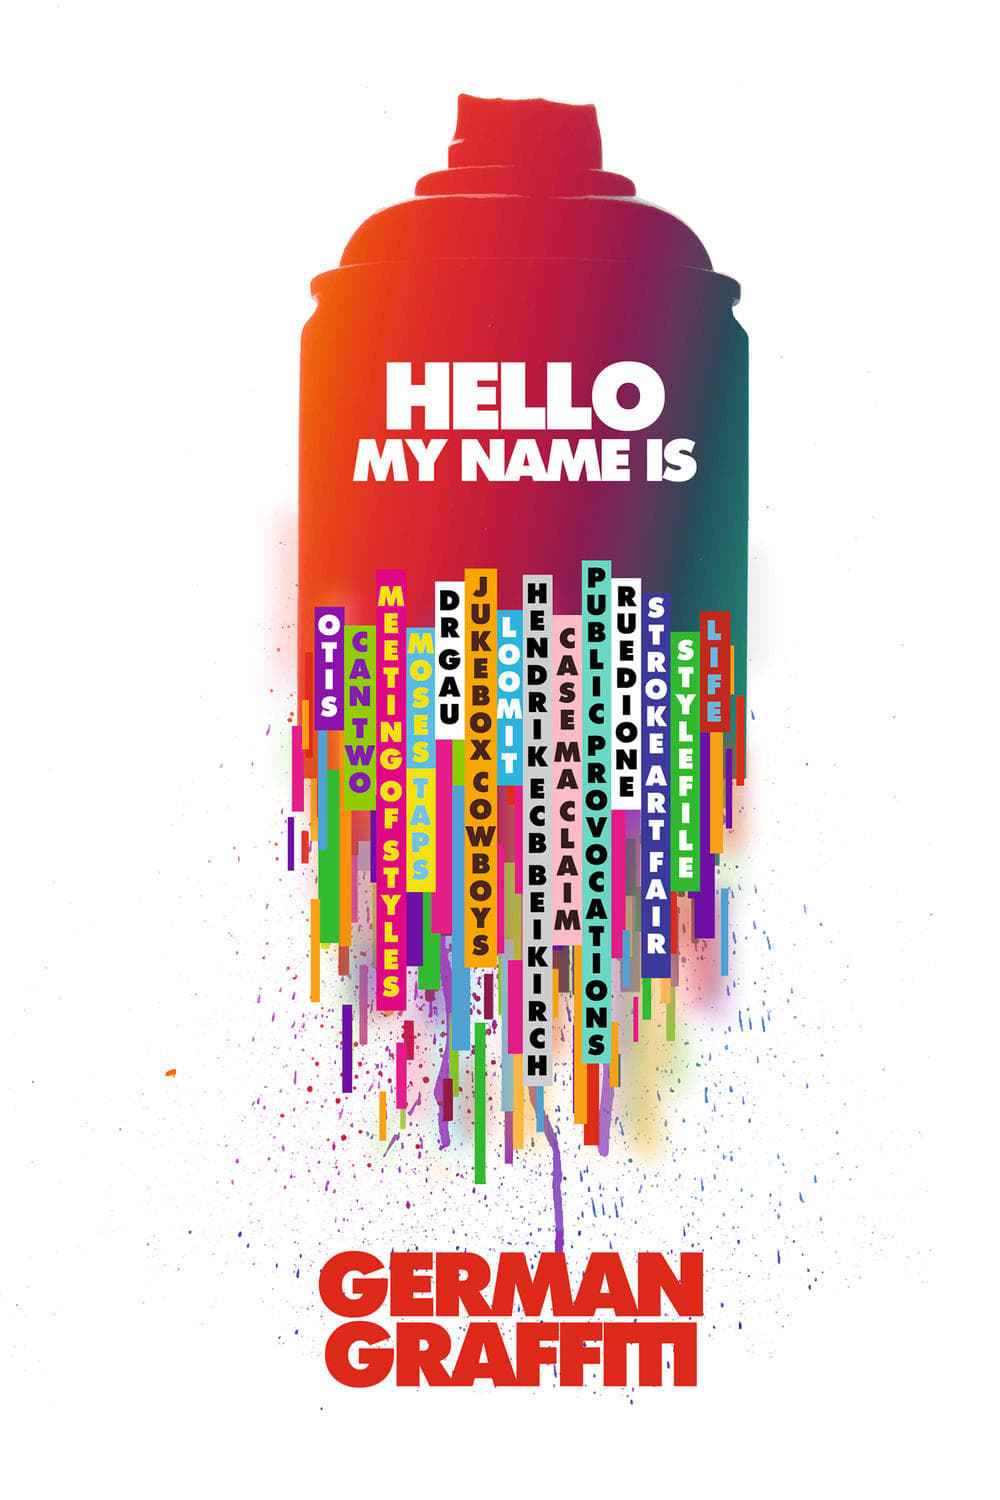 Hello My Name Is: German Graffiti (2015)